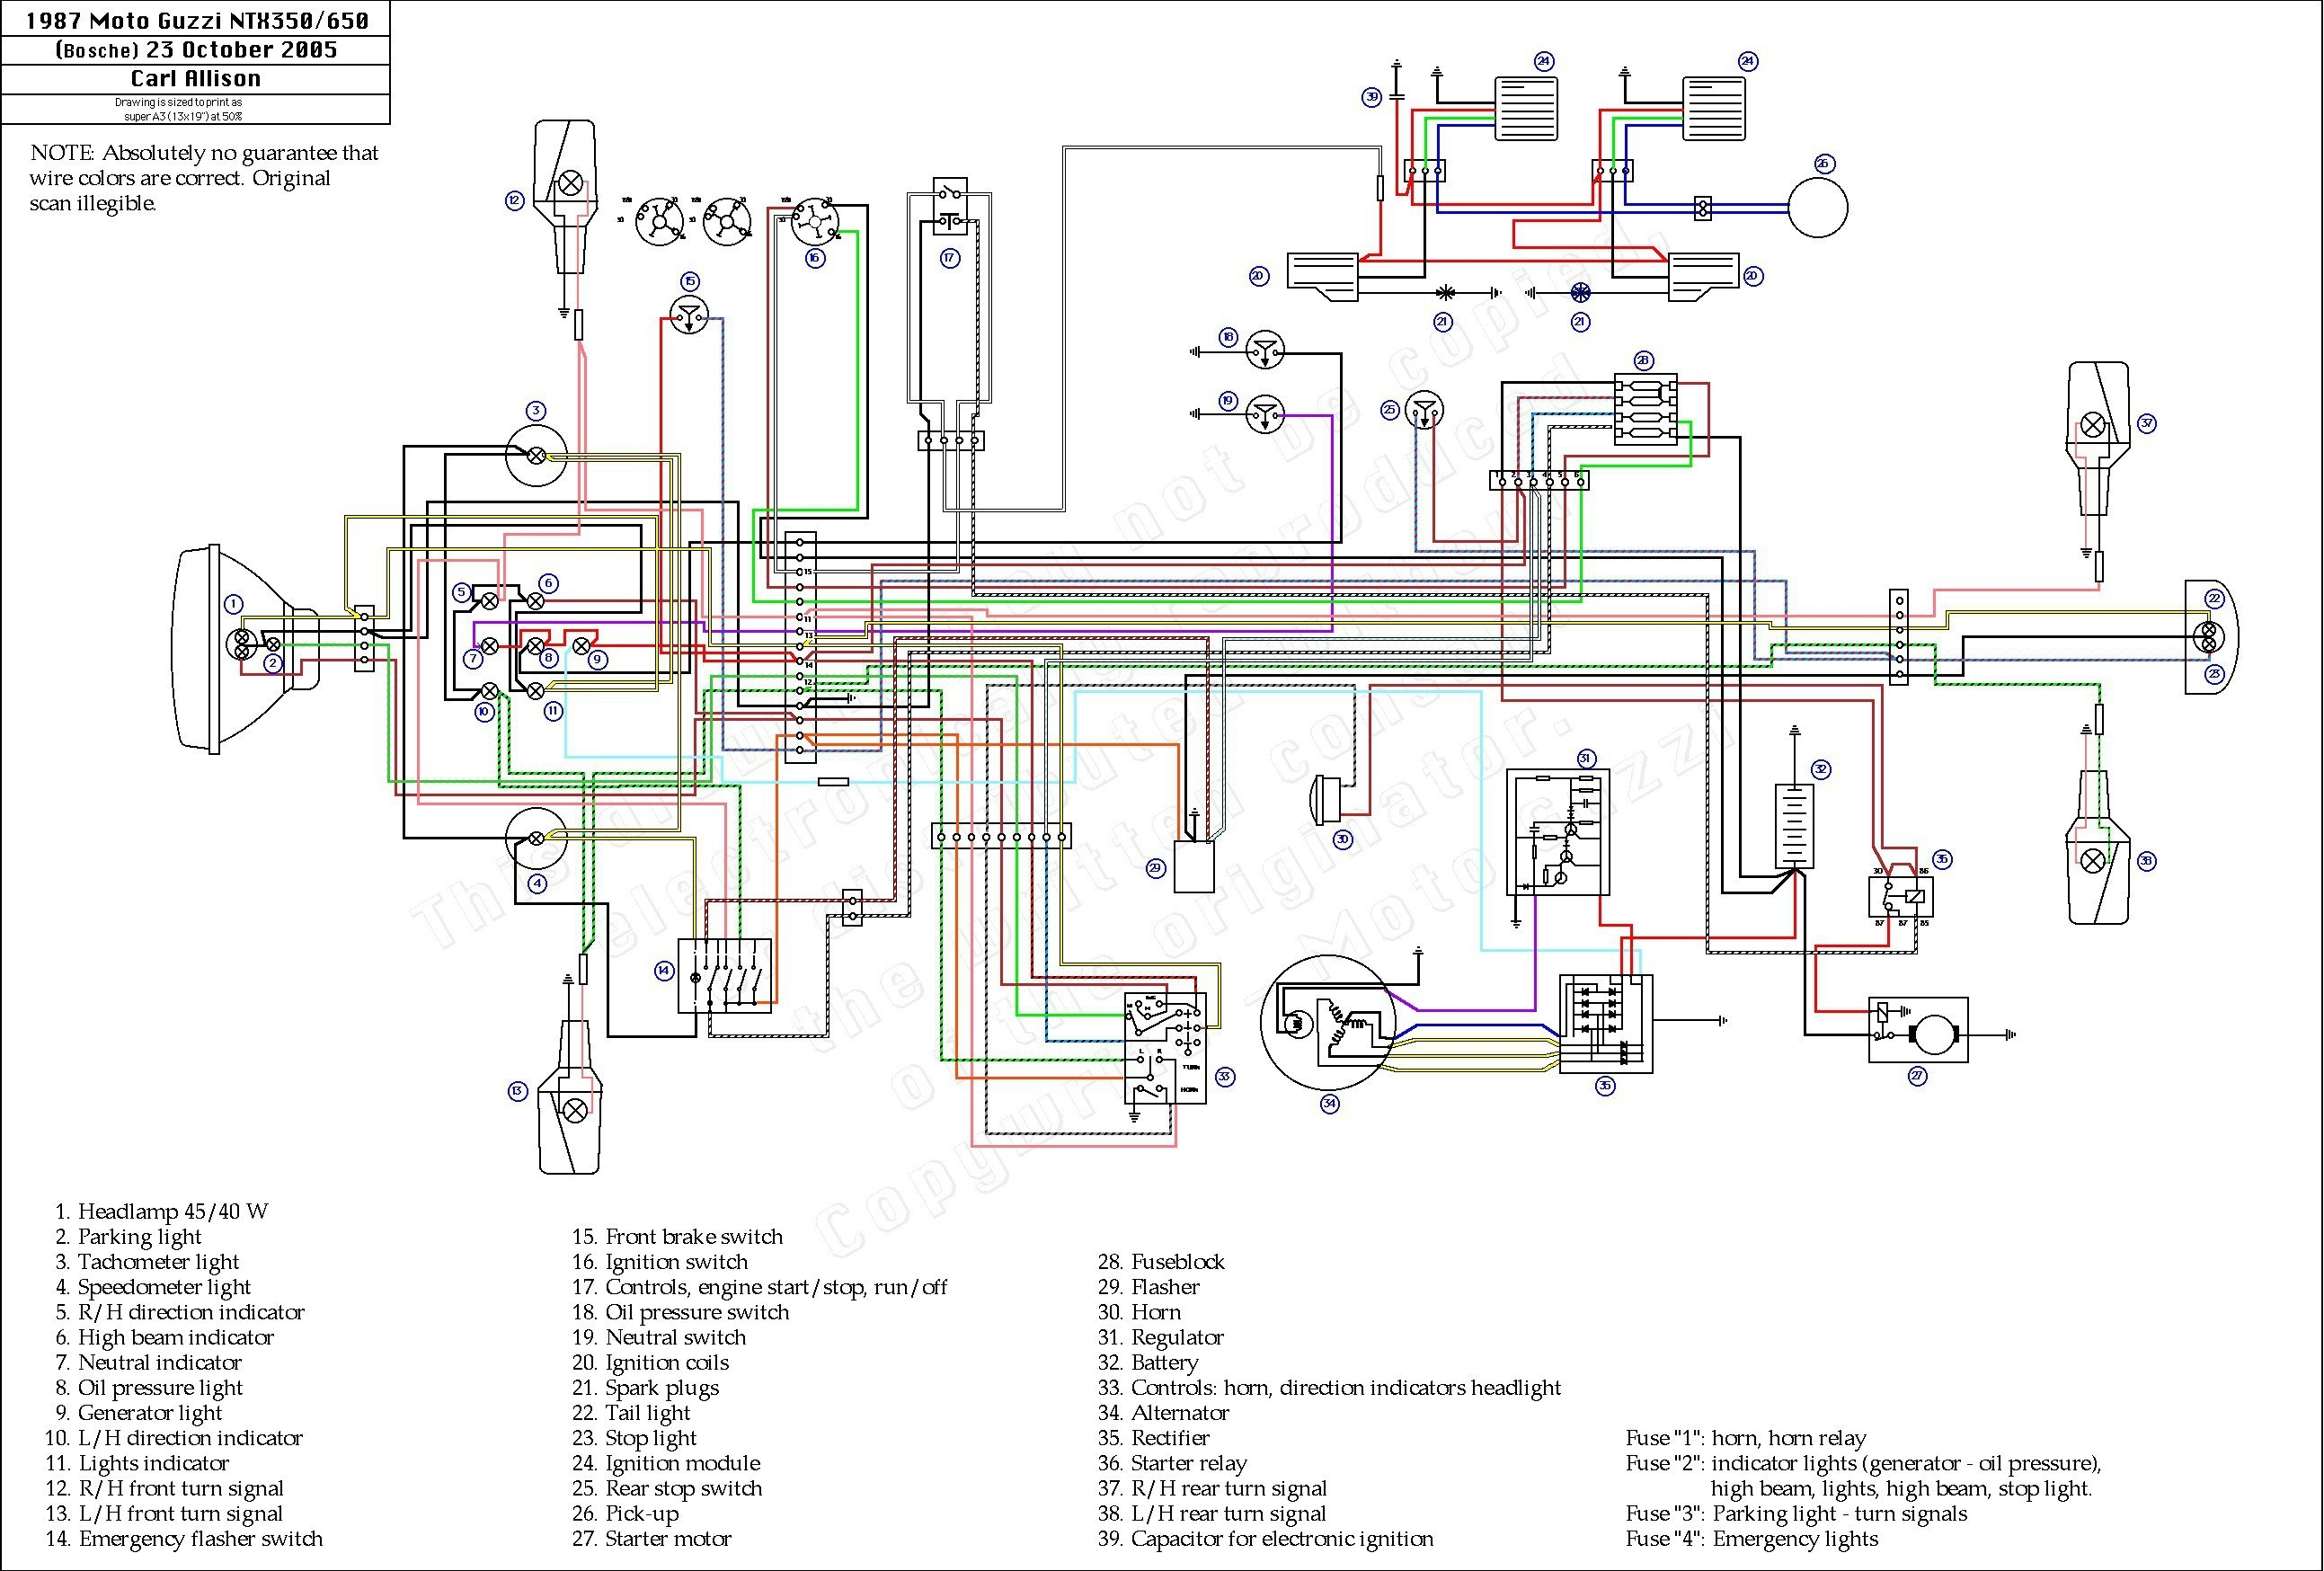 Tao Tao 4 Wheeler Wiring Diagram -67 Lincoln Continental Fuse Box | Begeboy Wiring  Diagram SourceBegeboy Wiring Diagram Source